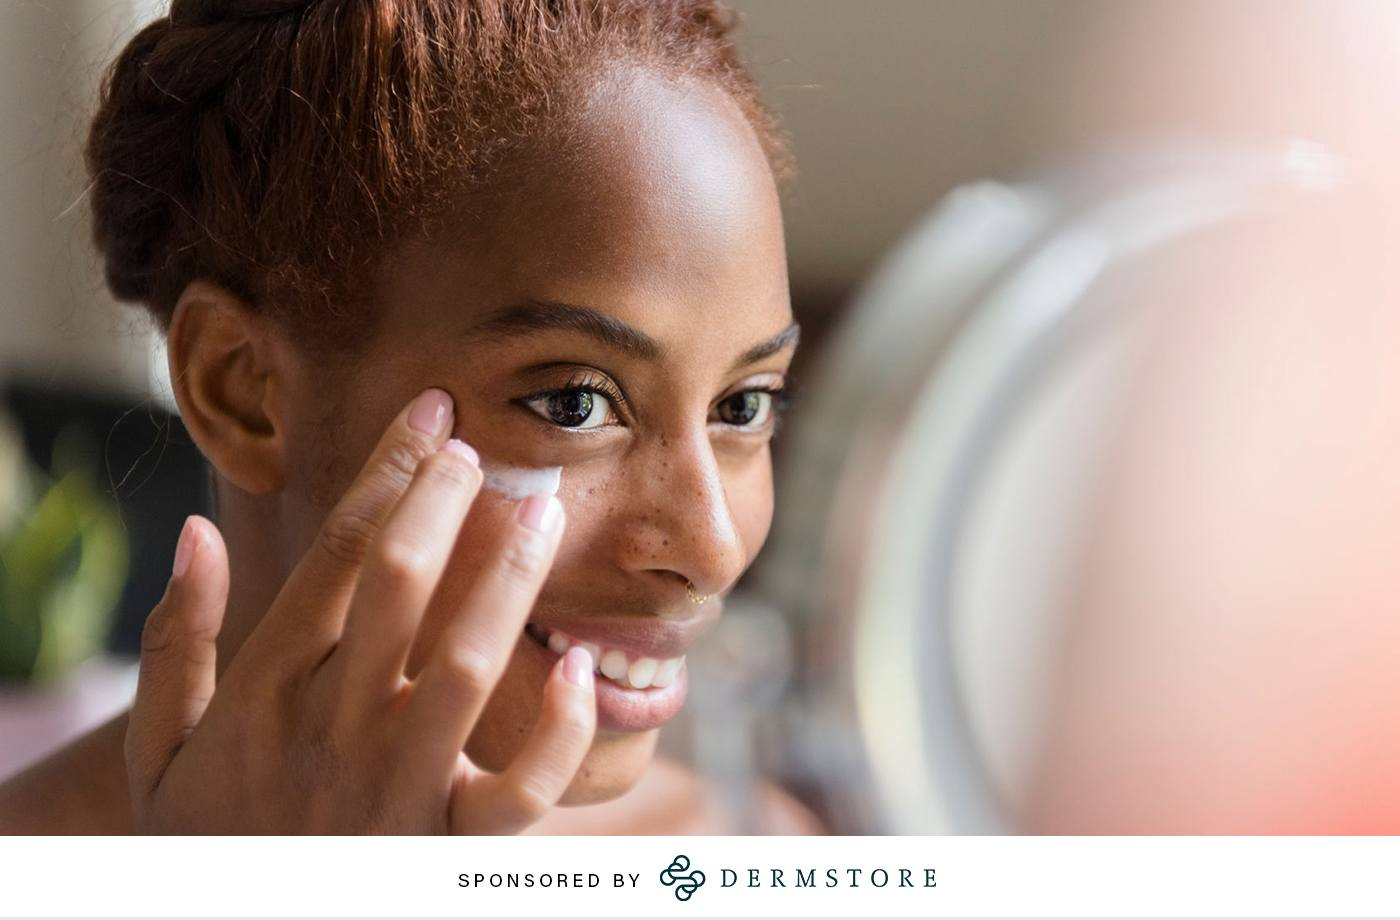 Here's why using organic skin care matters, according to a licensed esthetician